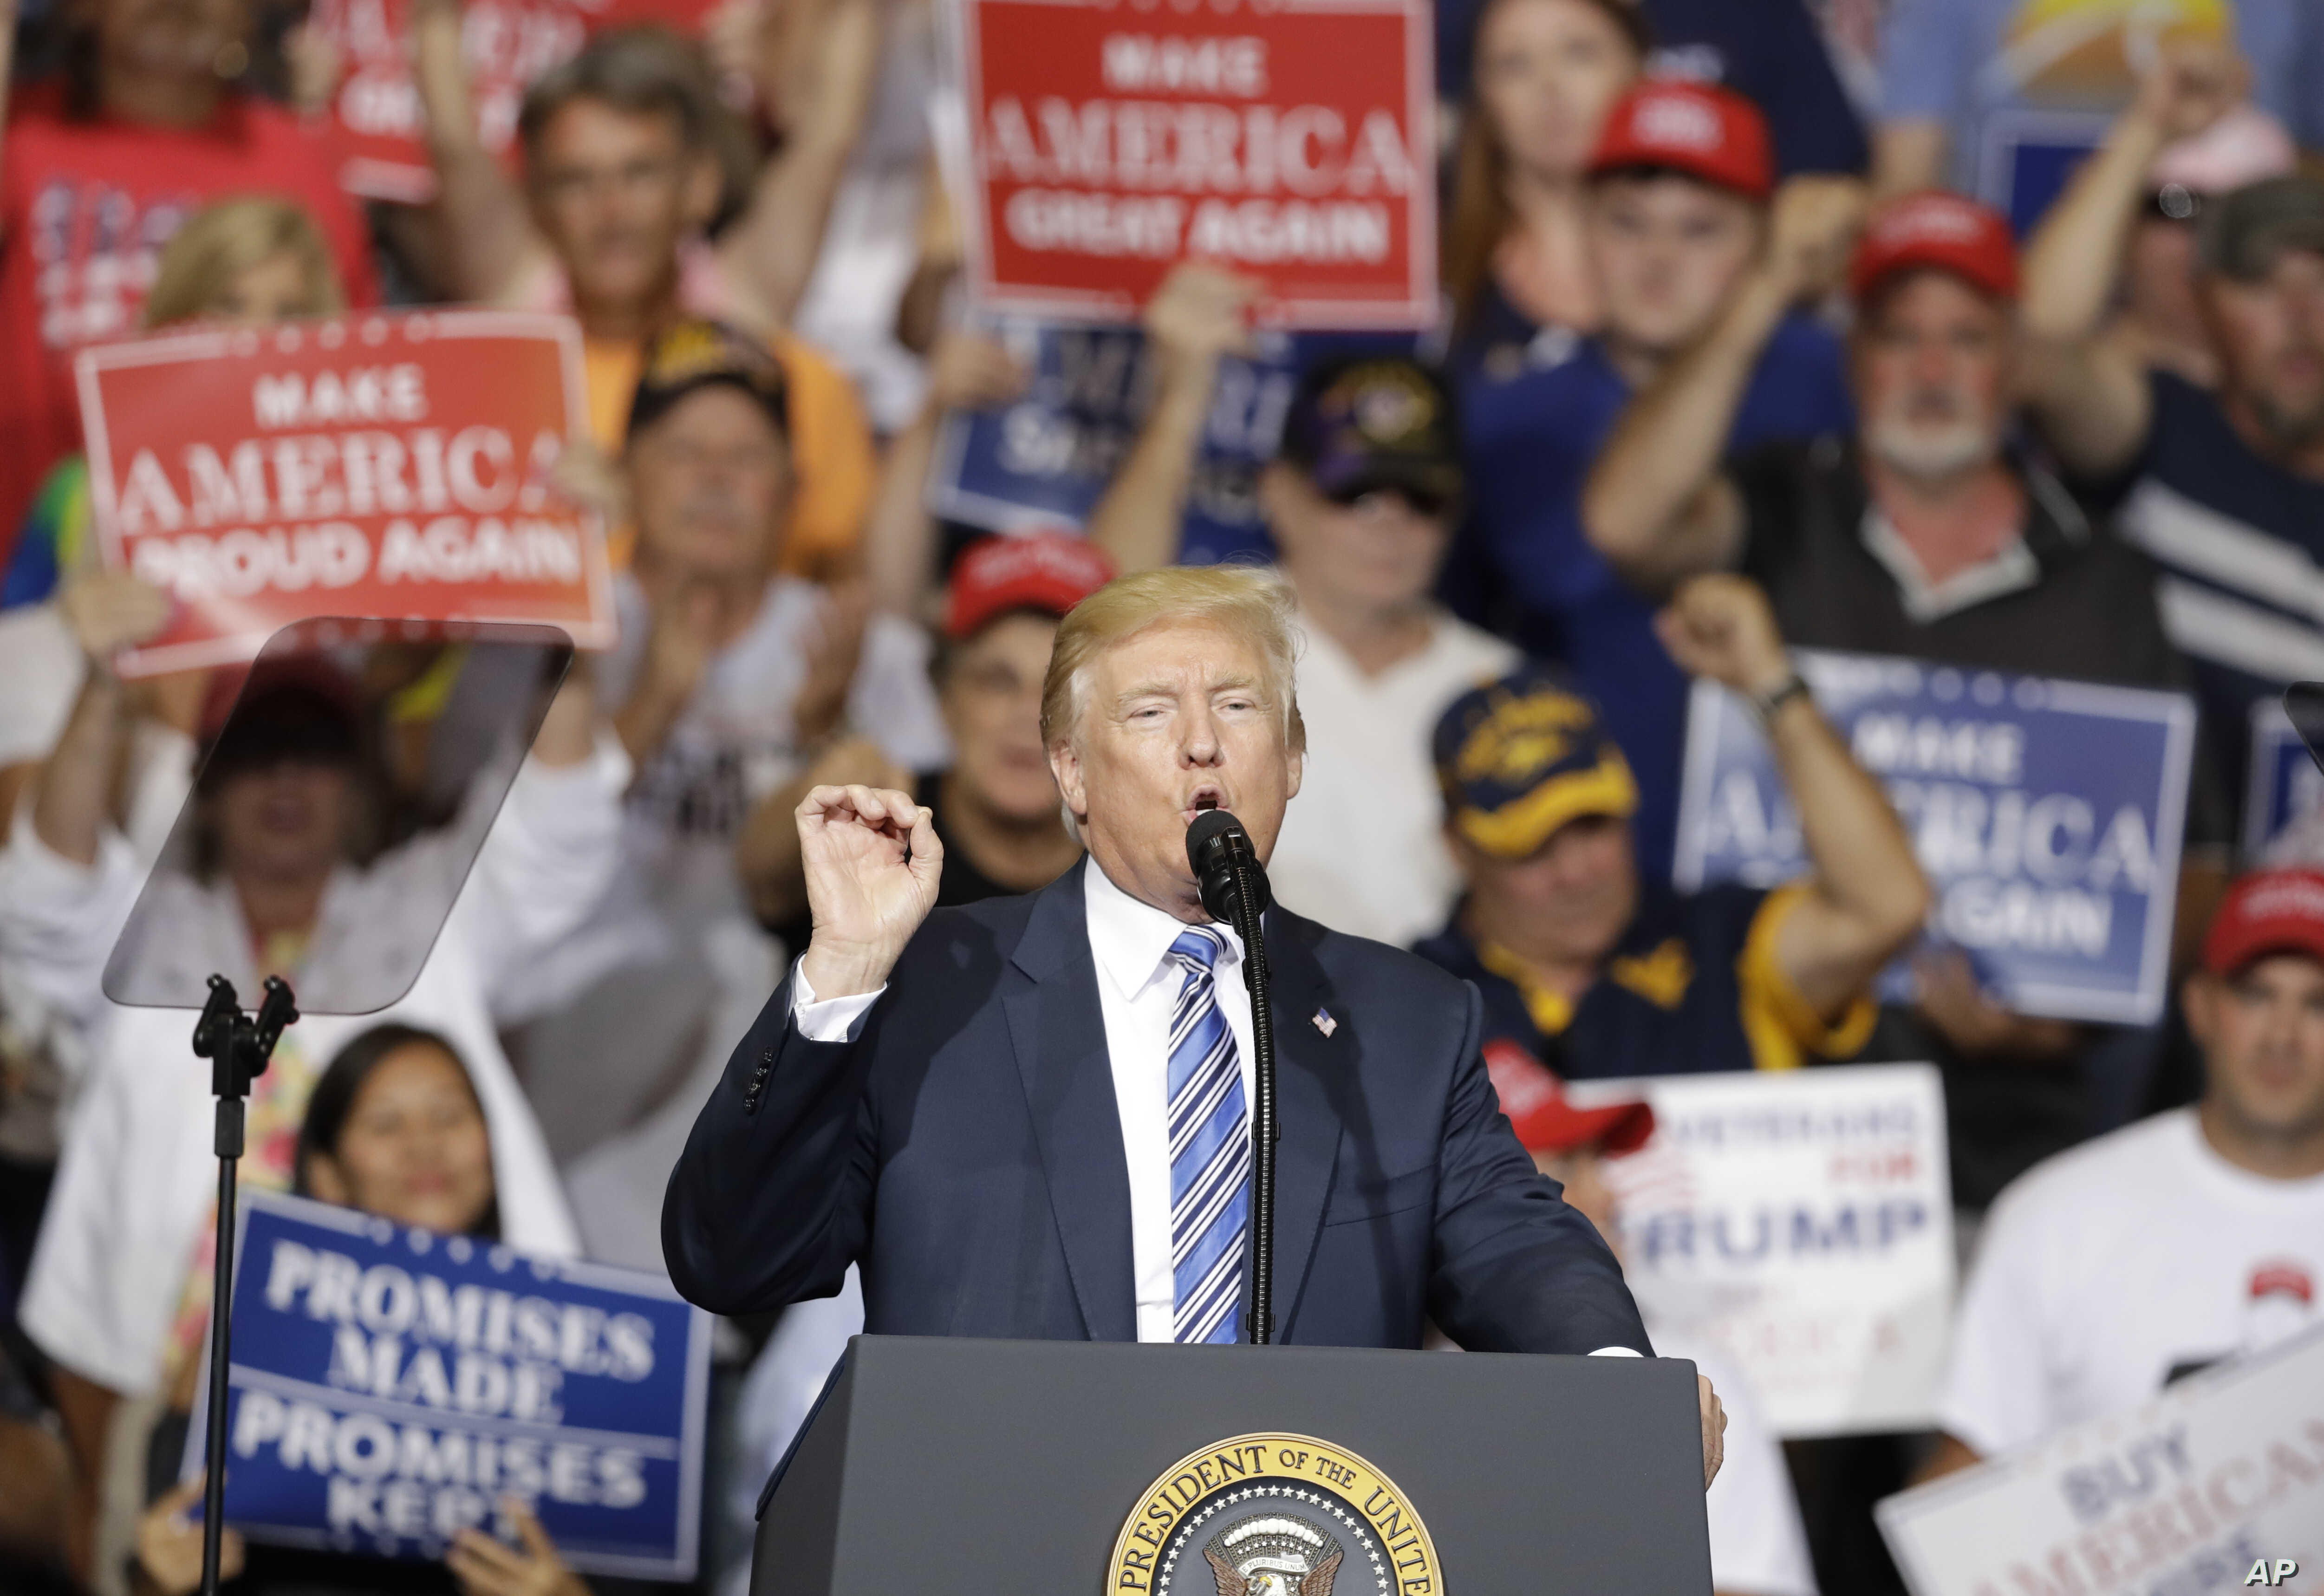 President Donald Trump speaks during a rally in Huntington, W.Va., Aug. 3, 2017.